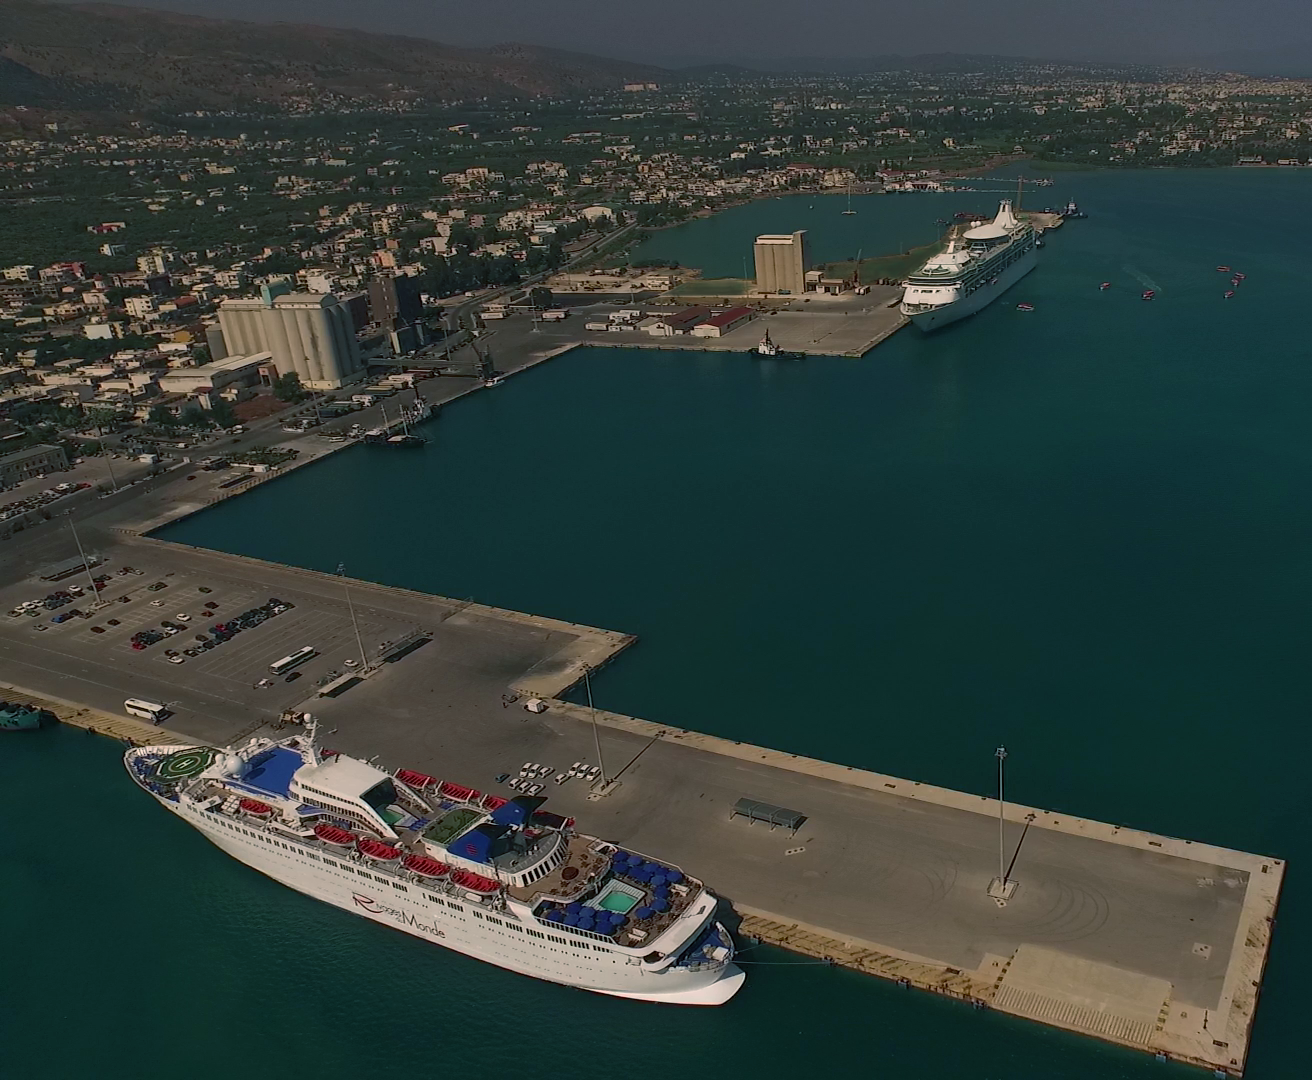 Aerial View of Chania Port